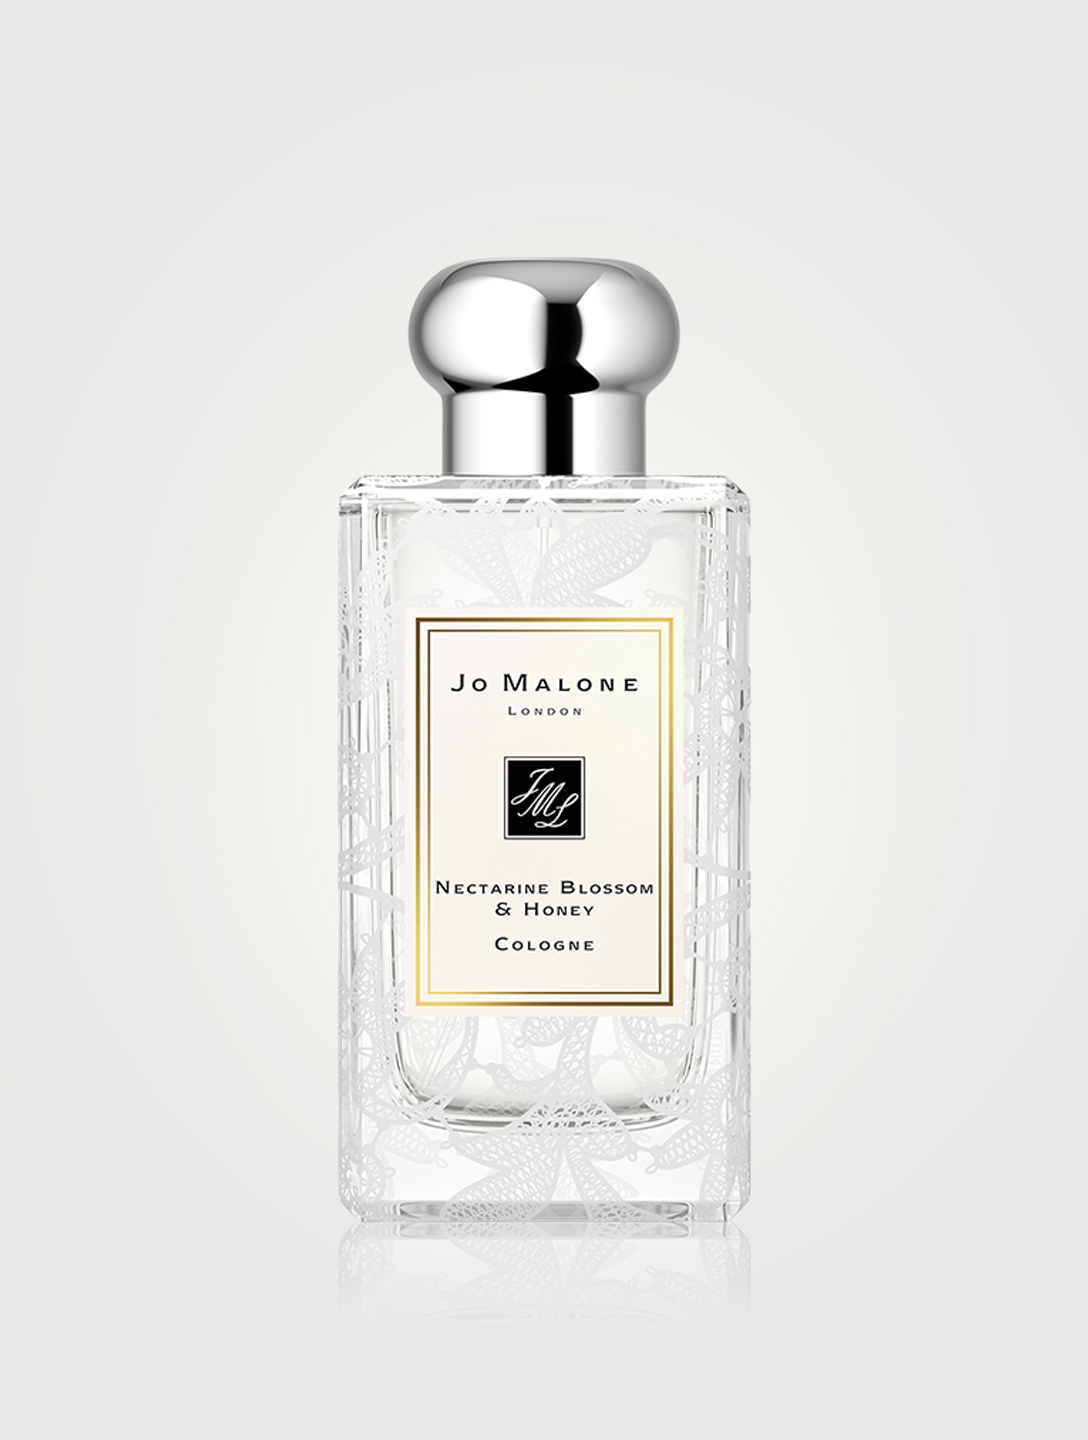 JO MALONE LONDON Nectarine Blossom & Honey Cologne with Daisy Leaf Lace Design Beauty